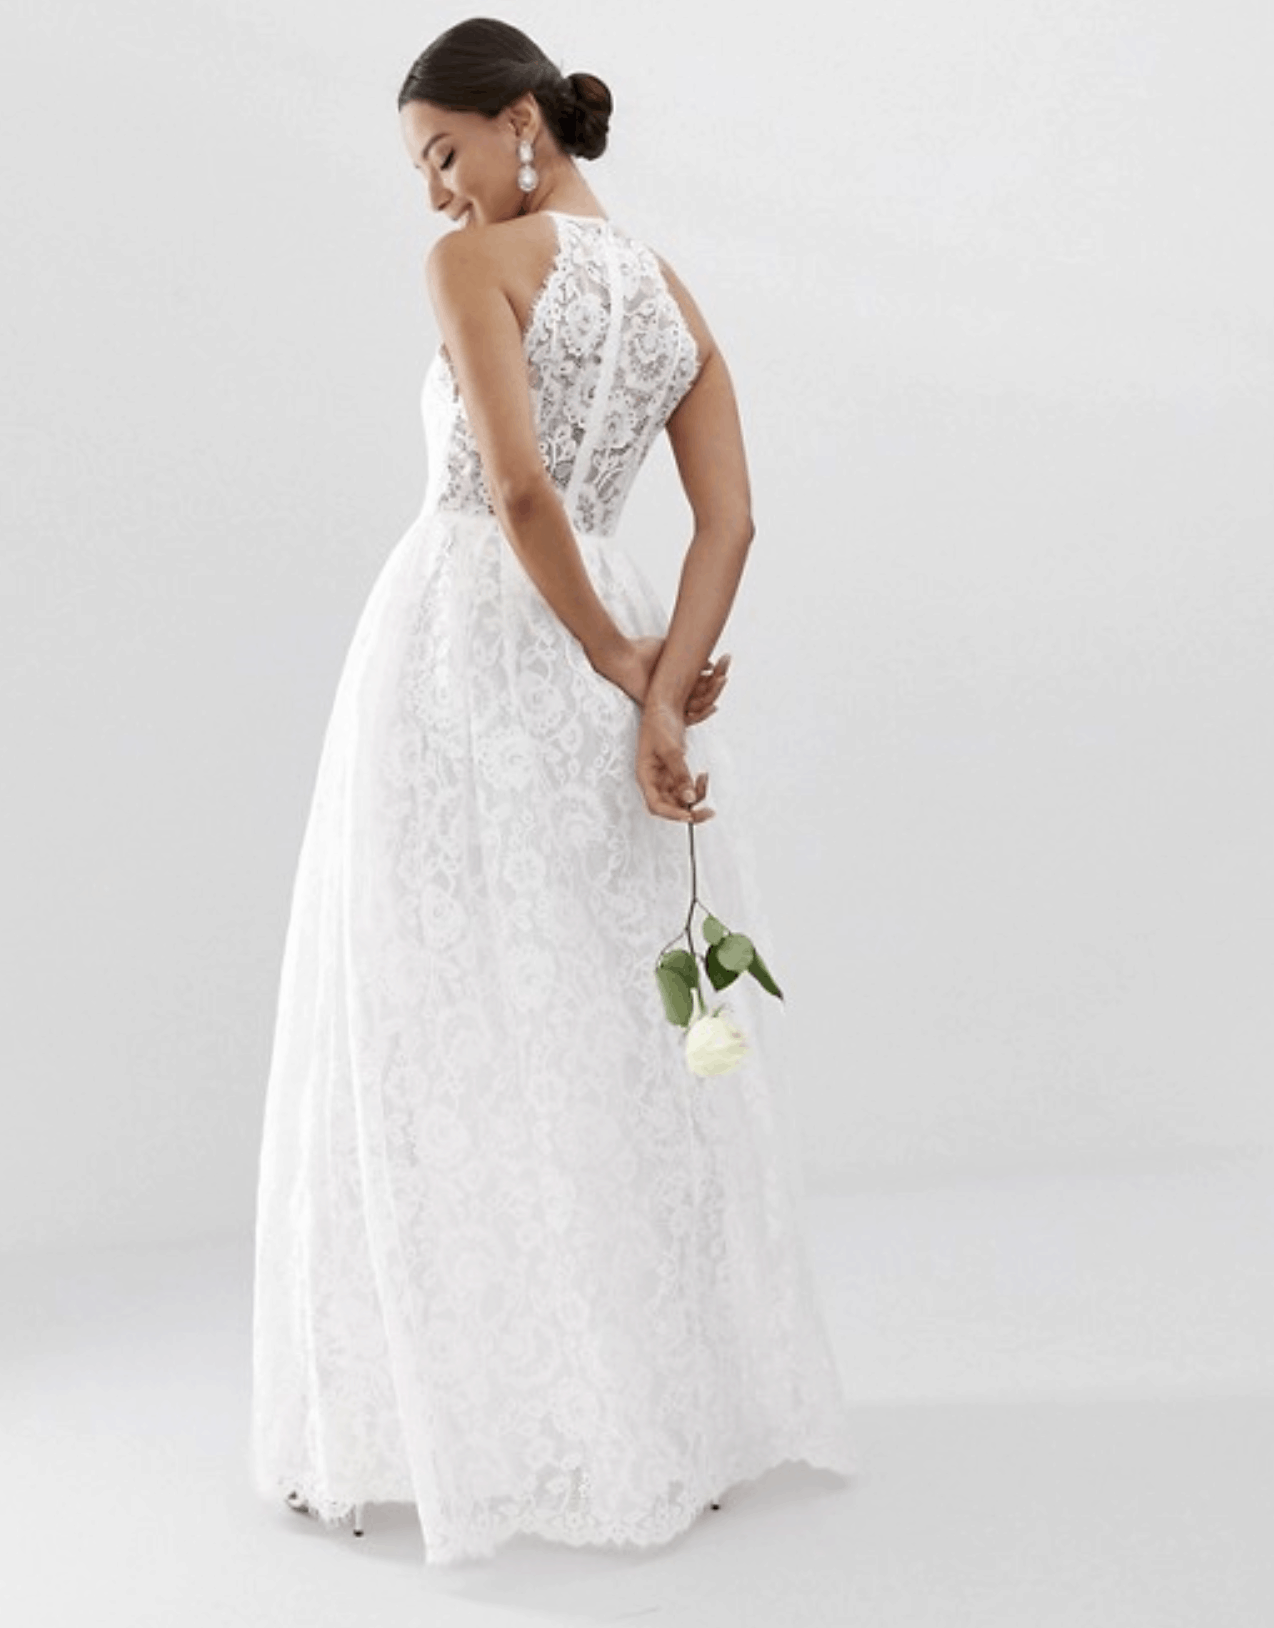 20 Cheap Affordable Bridal Gowns And Wedding Dresses